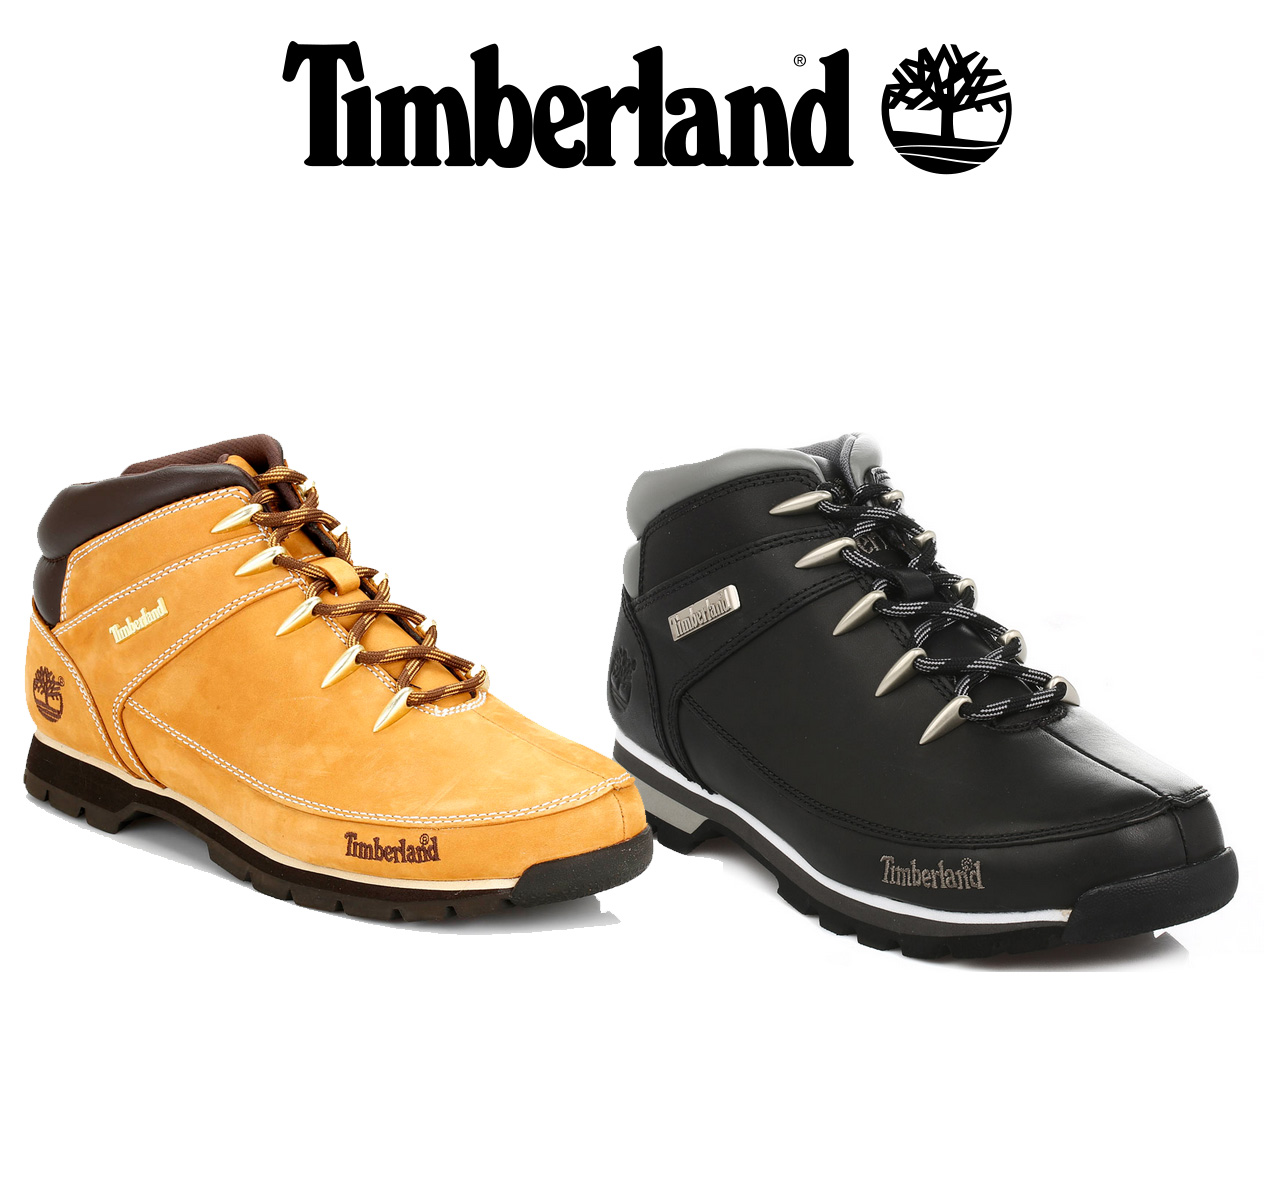 f54b8816115 Details about Timberland Mens Euro Sprint Hiker Boots, Black or Wheat  Yellow, Leather Shoes